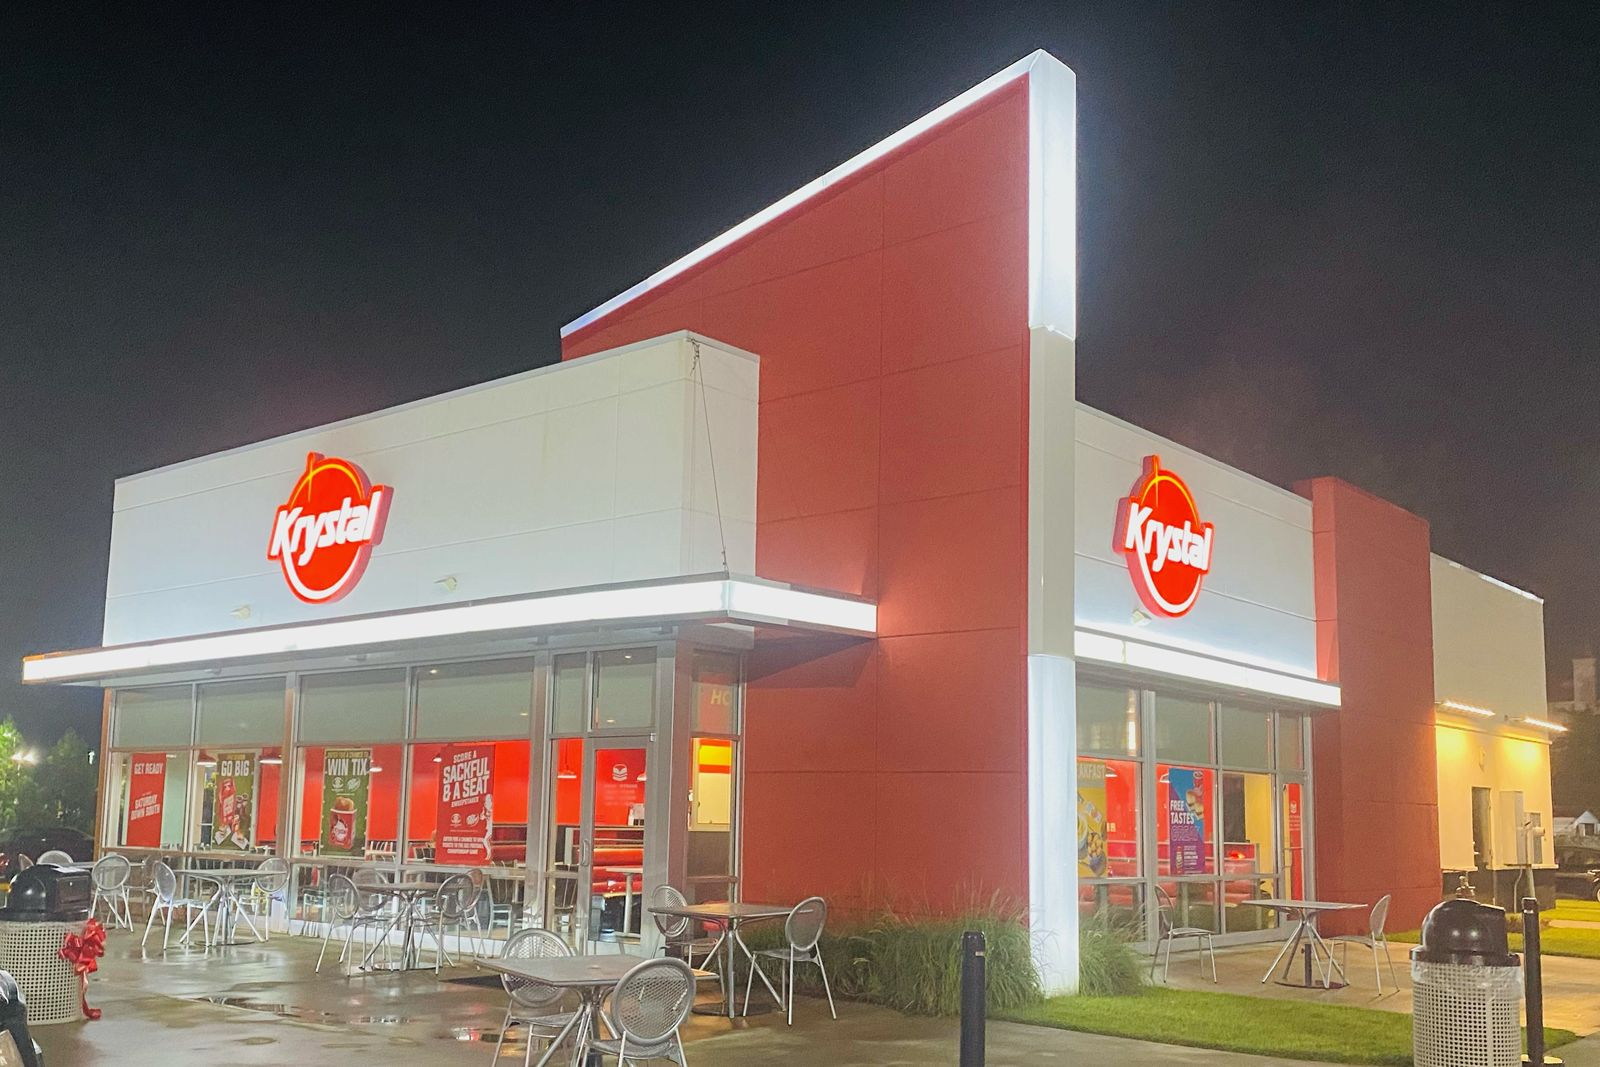 Krystal's New Franchisee To Open First New Restaurant in 15 Years, Coming Soon to Dublin